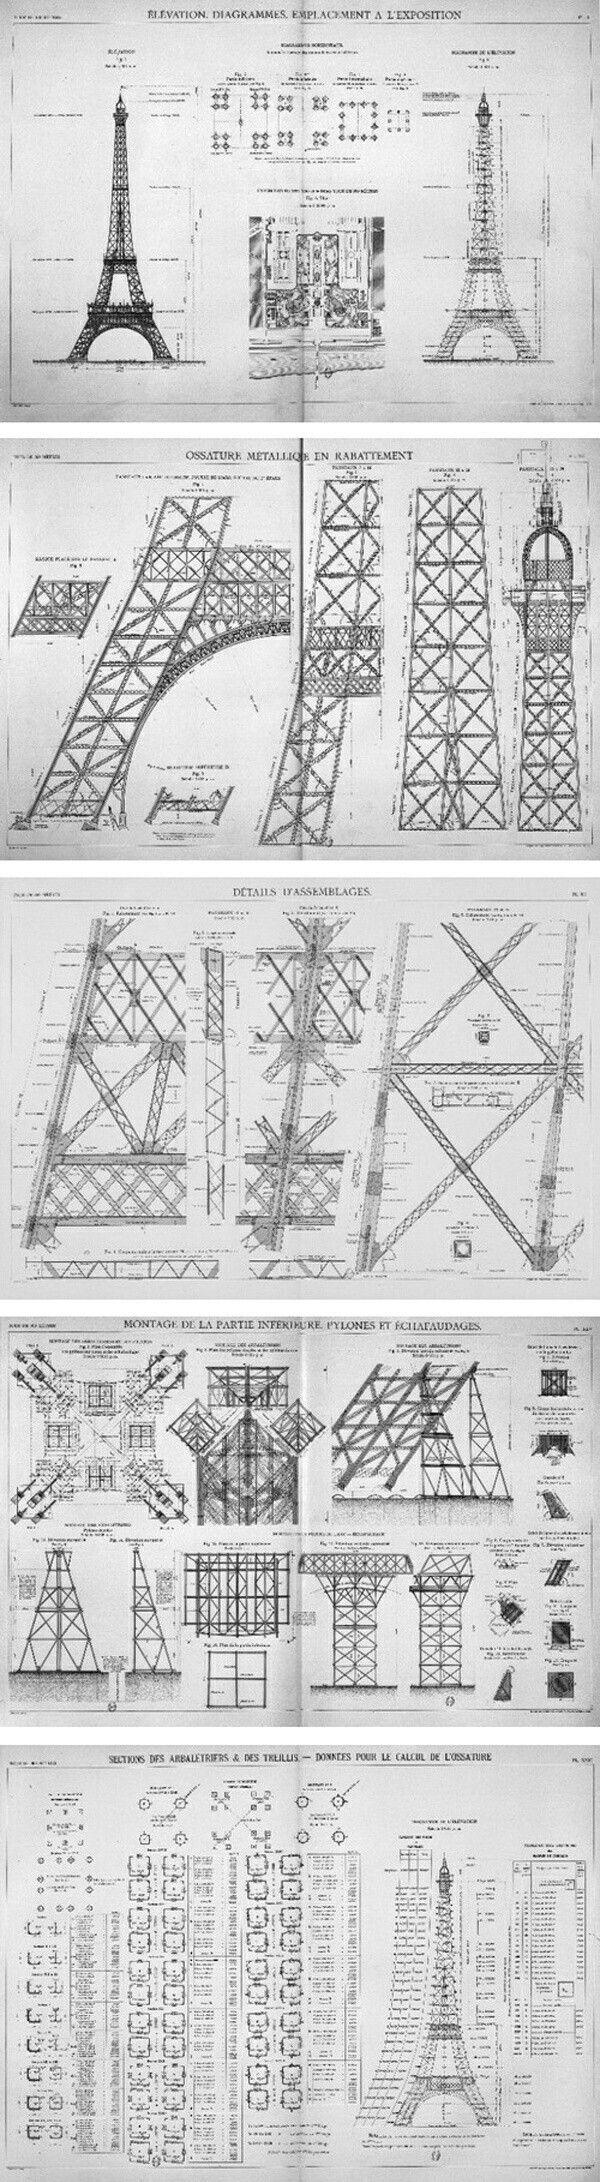 Drawn bridge civil engineering Pin Engineering as Art on